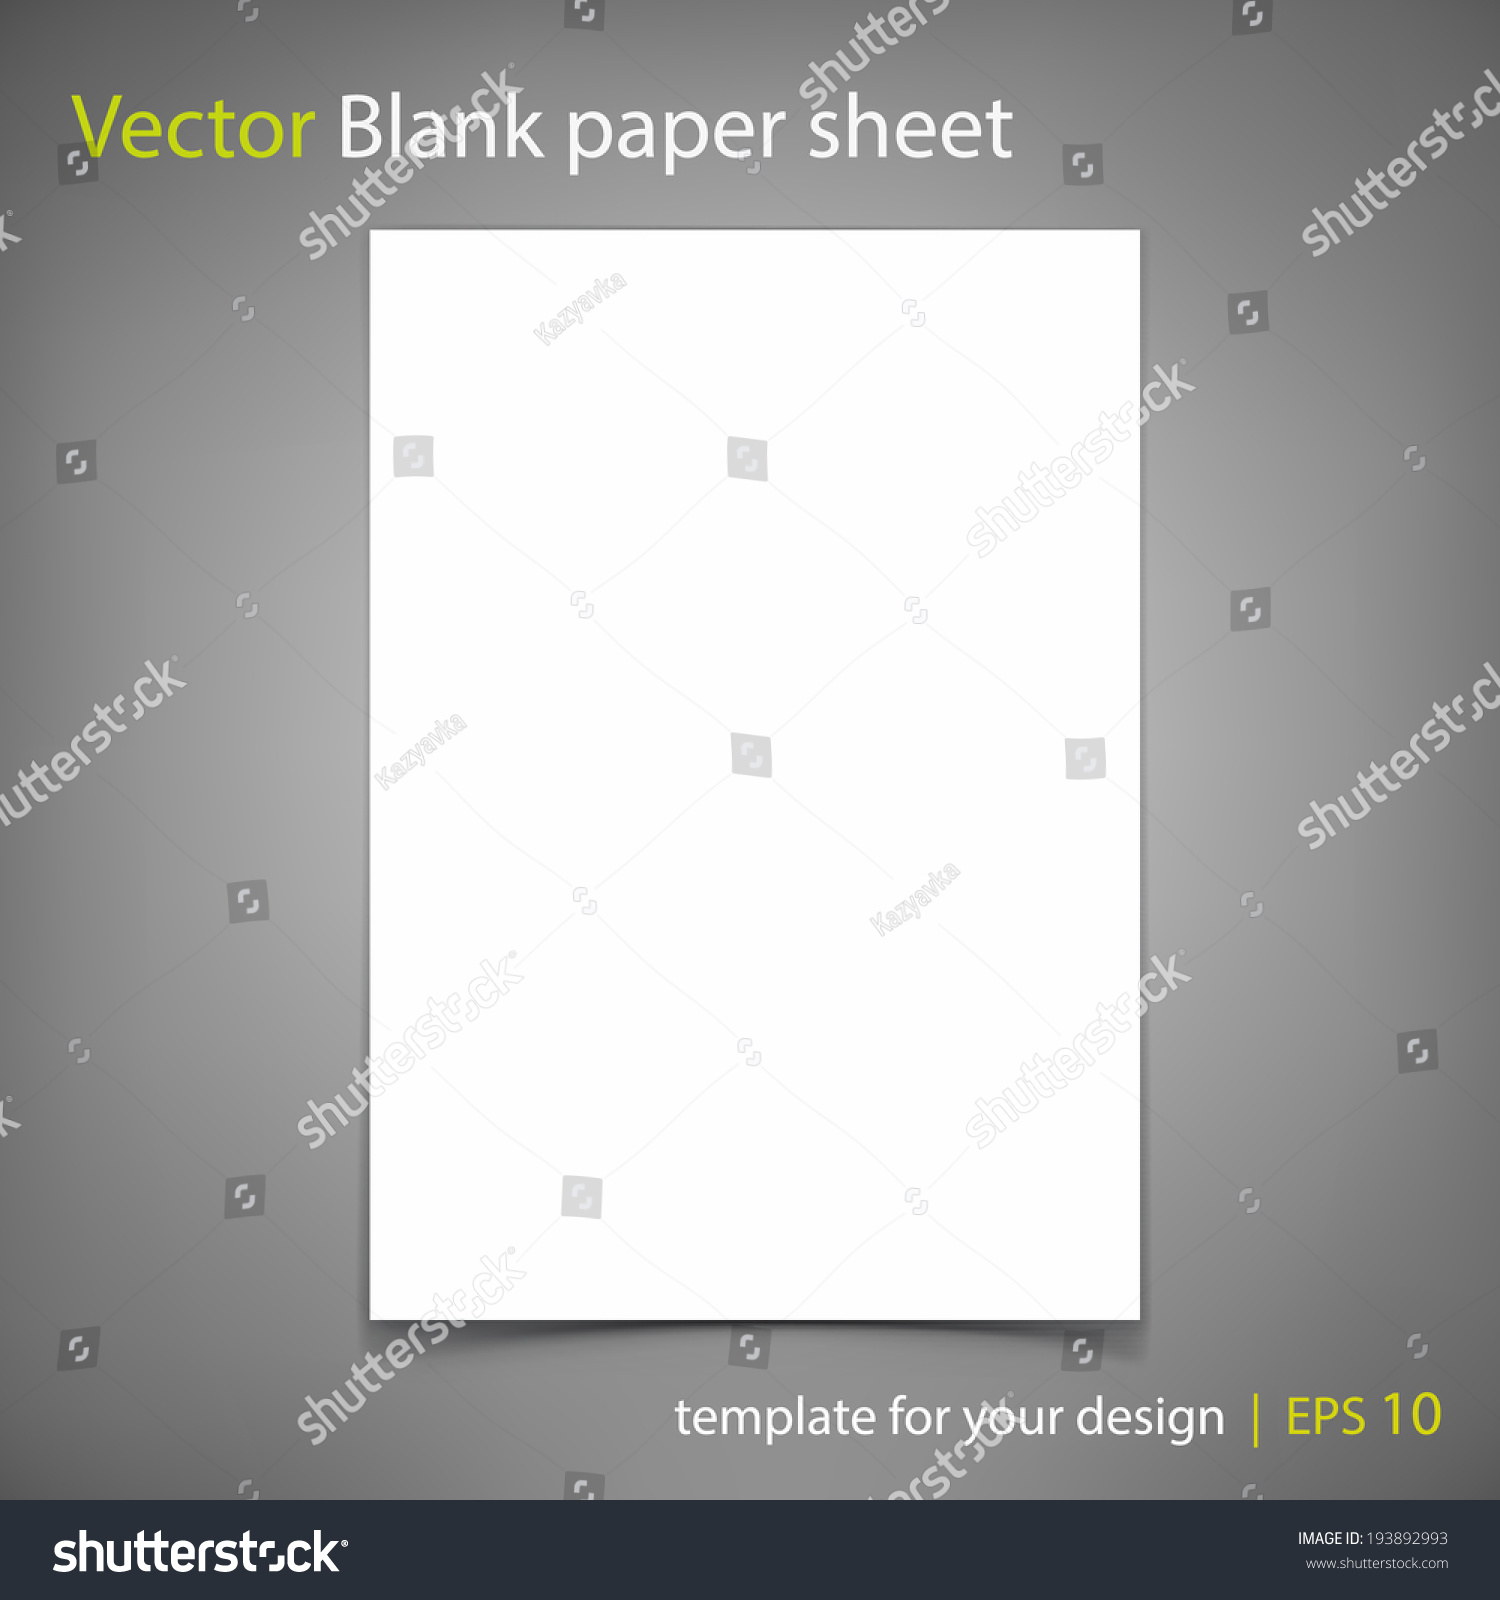 word doc background templates